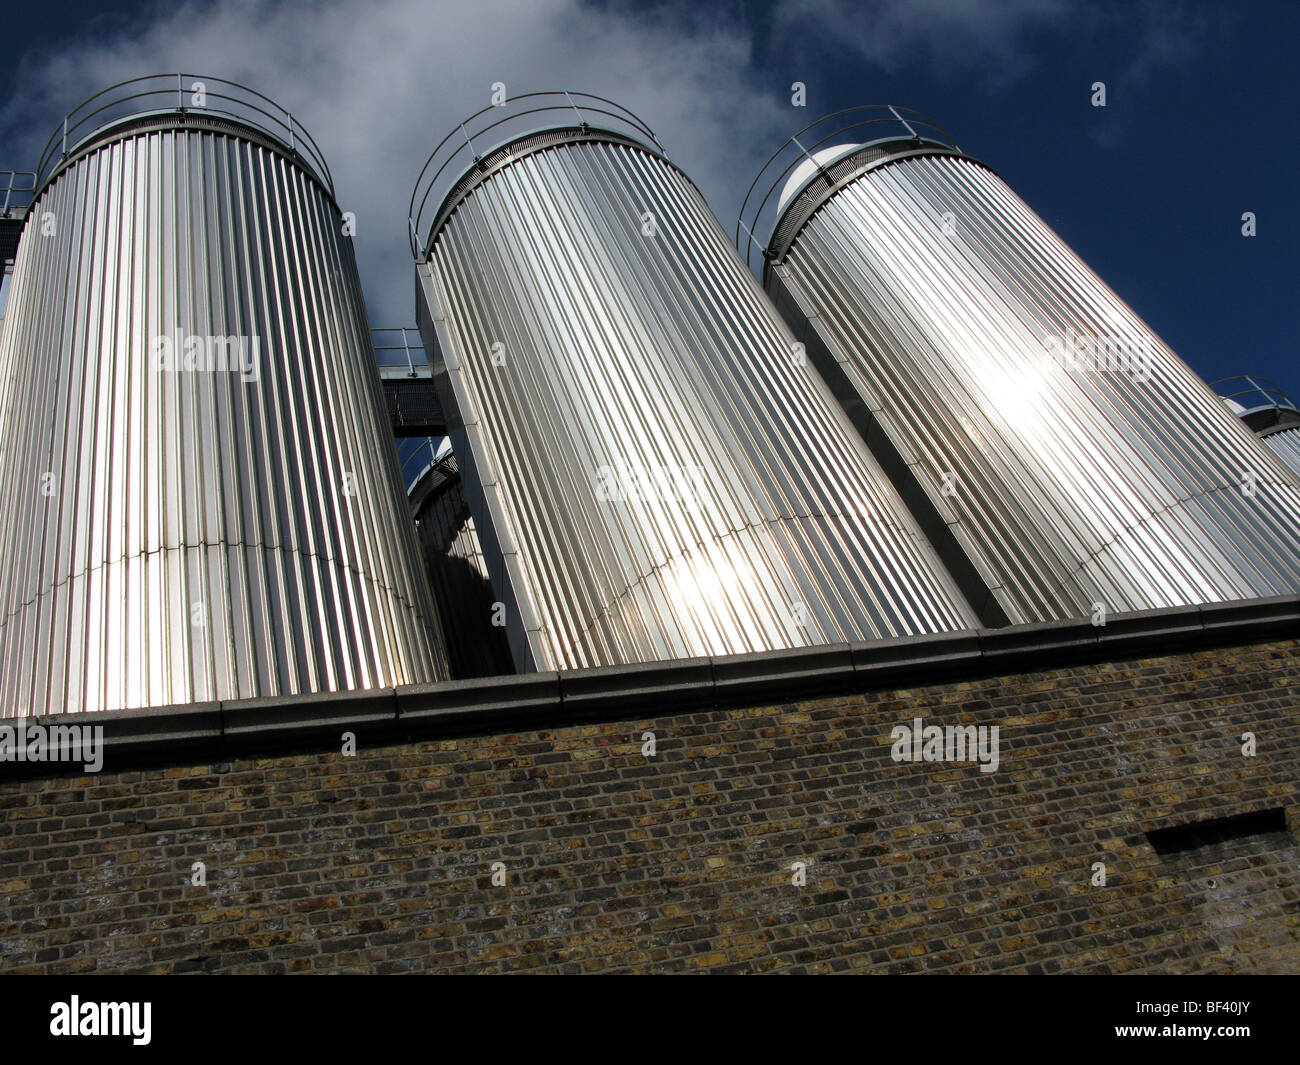 Beer tanks at a factory building near Dublin - Stock Image